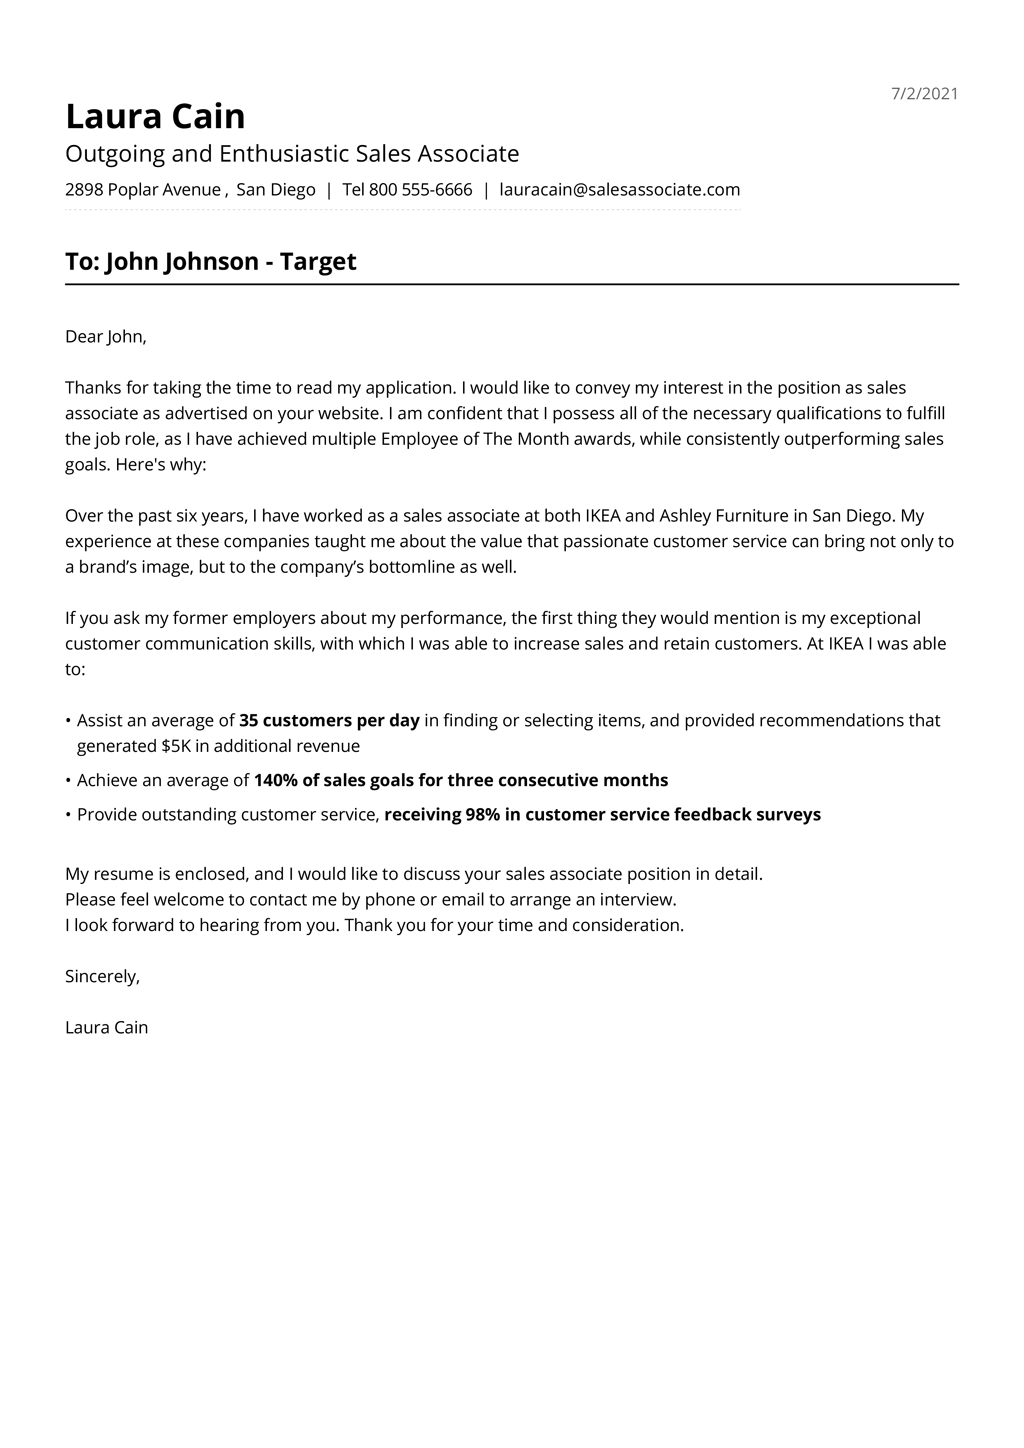 Traditional Letter Format.Free Cover Letter Templates You Can Edit And Download